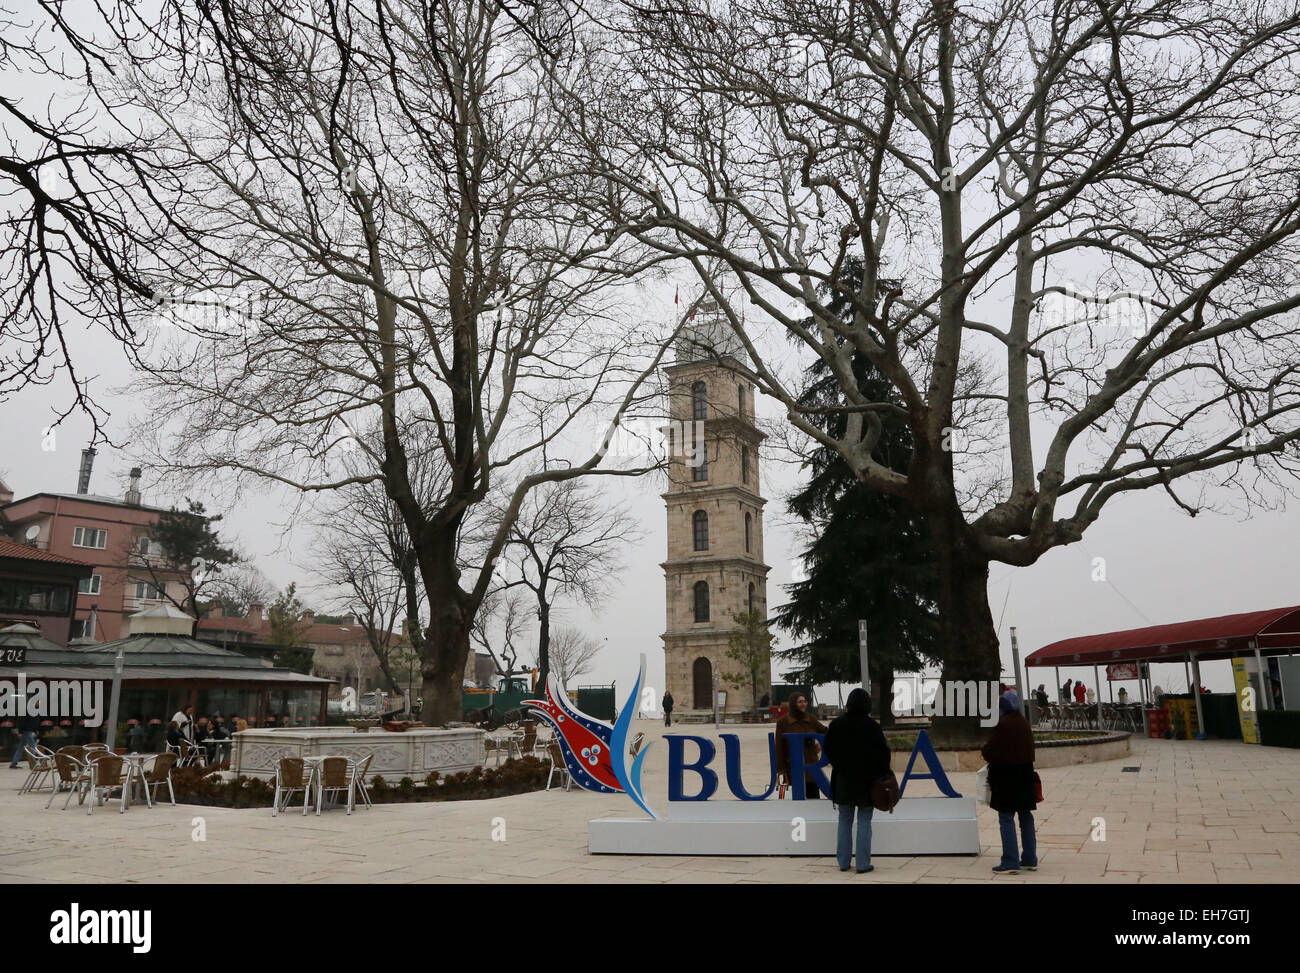 (150309) -- BURSA (TURKEY), March 9, 2015 (Xinhua) -- The clock tower in the park of the tomb of Orhan Ghazi, founder - Stock Image